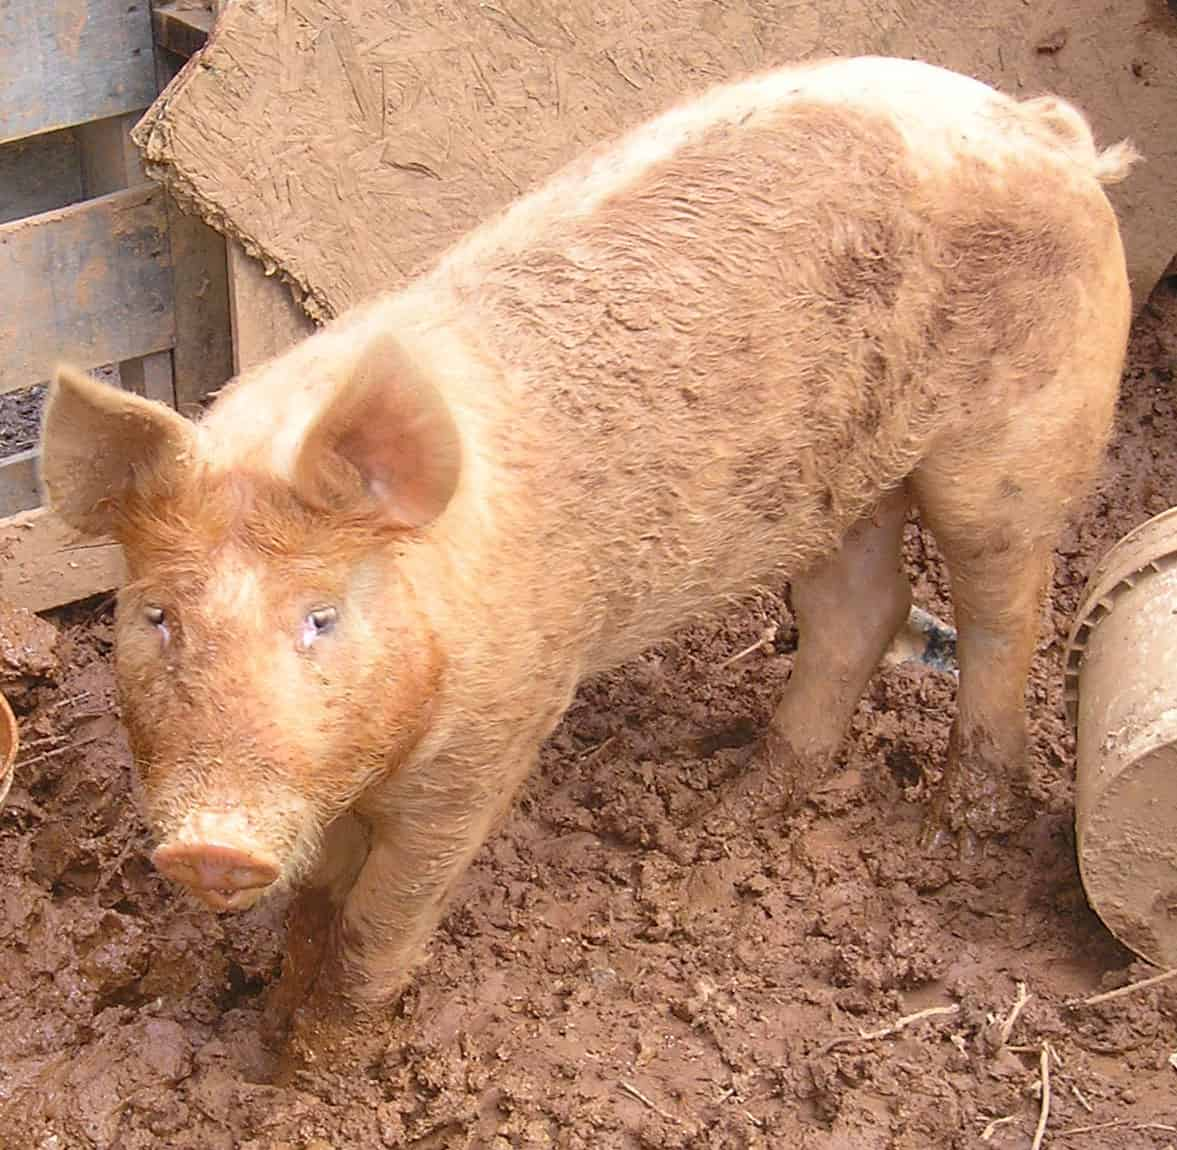 How To Raise Pigs For Meat – 3 Essential Tips For Beginners